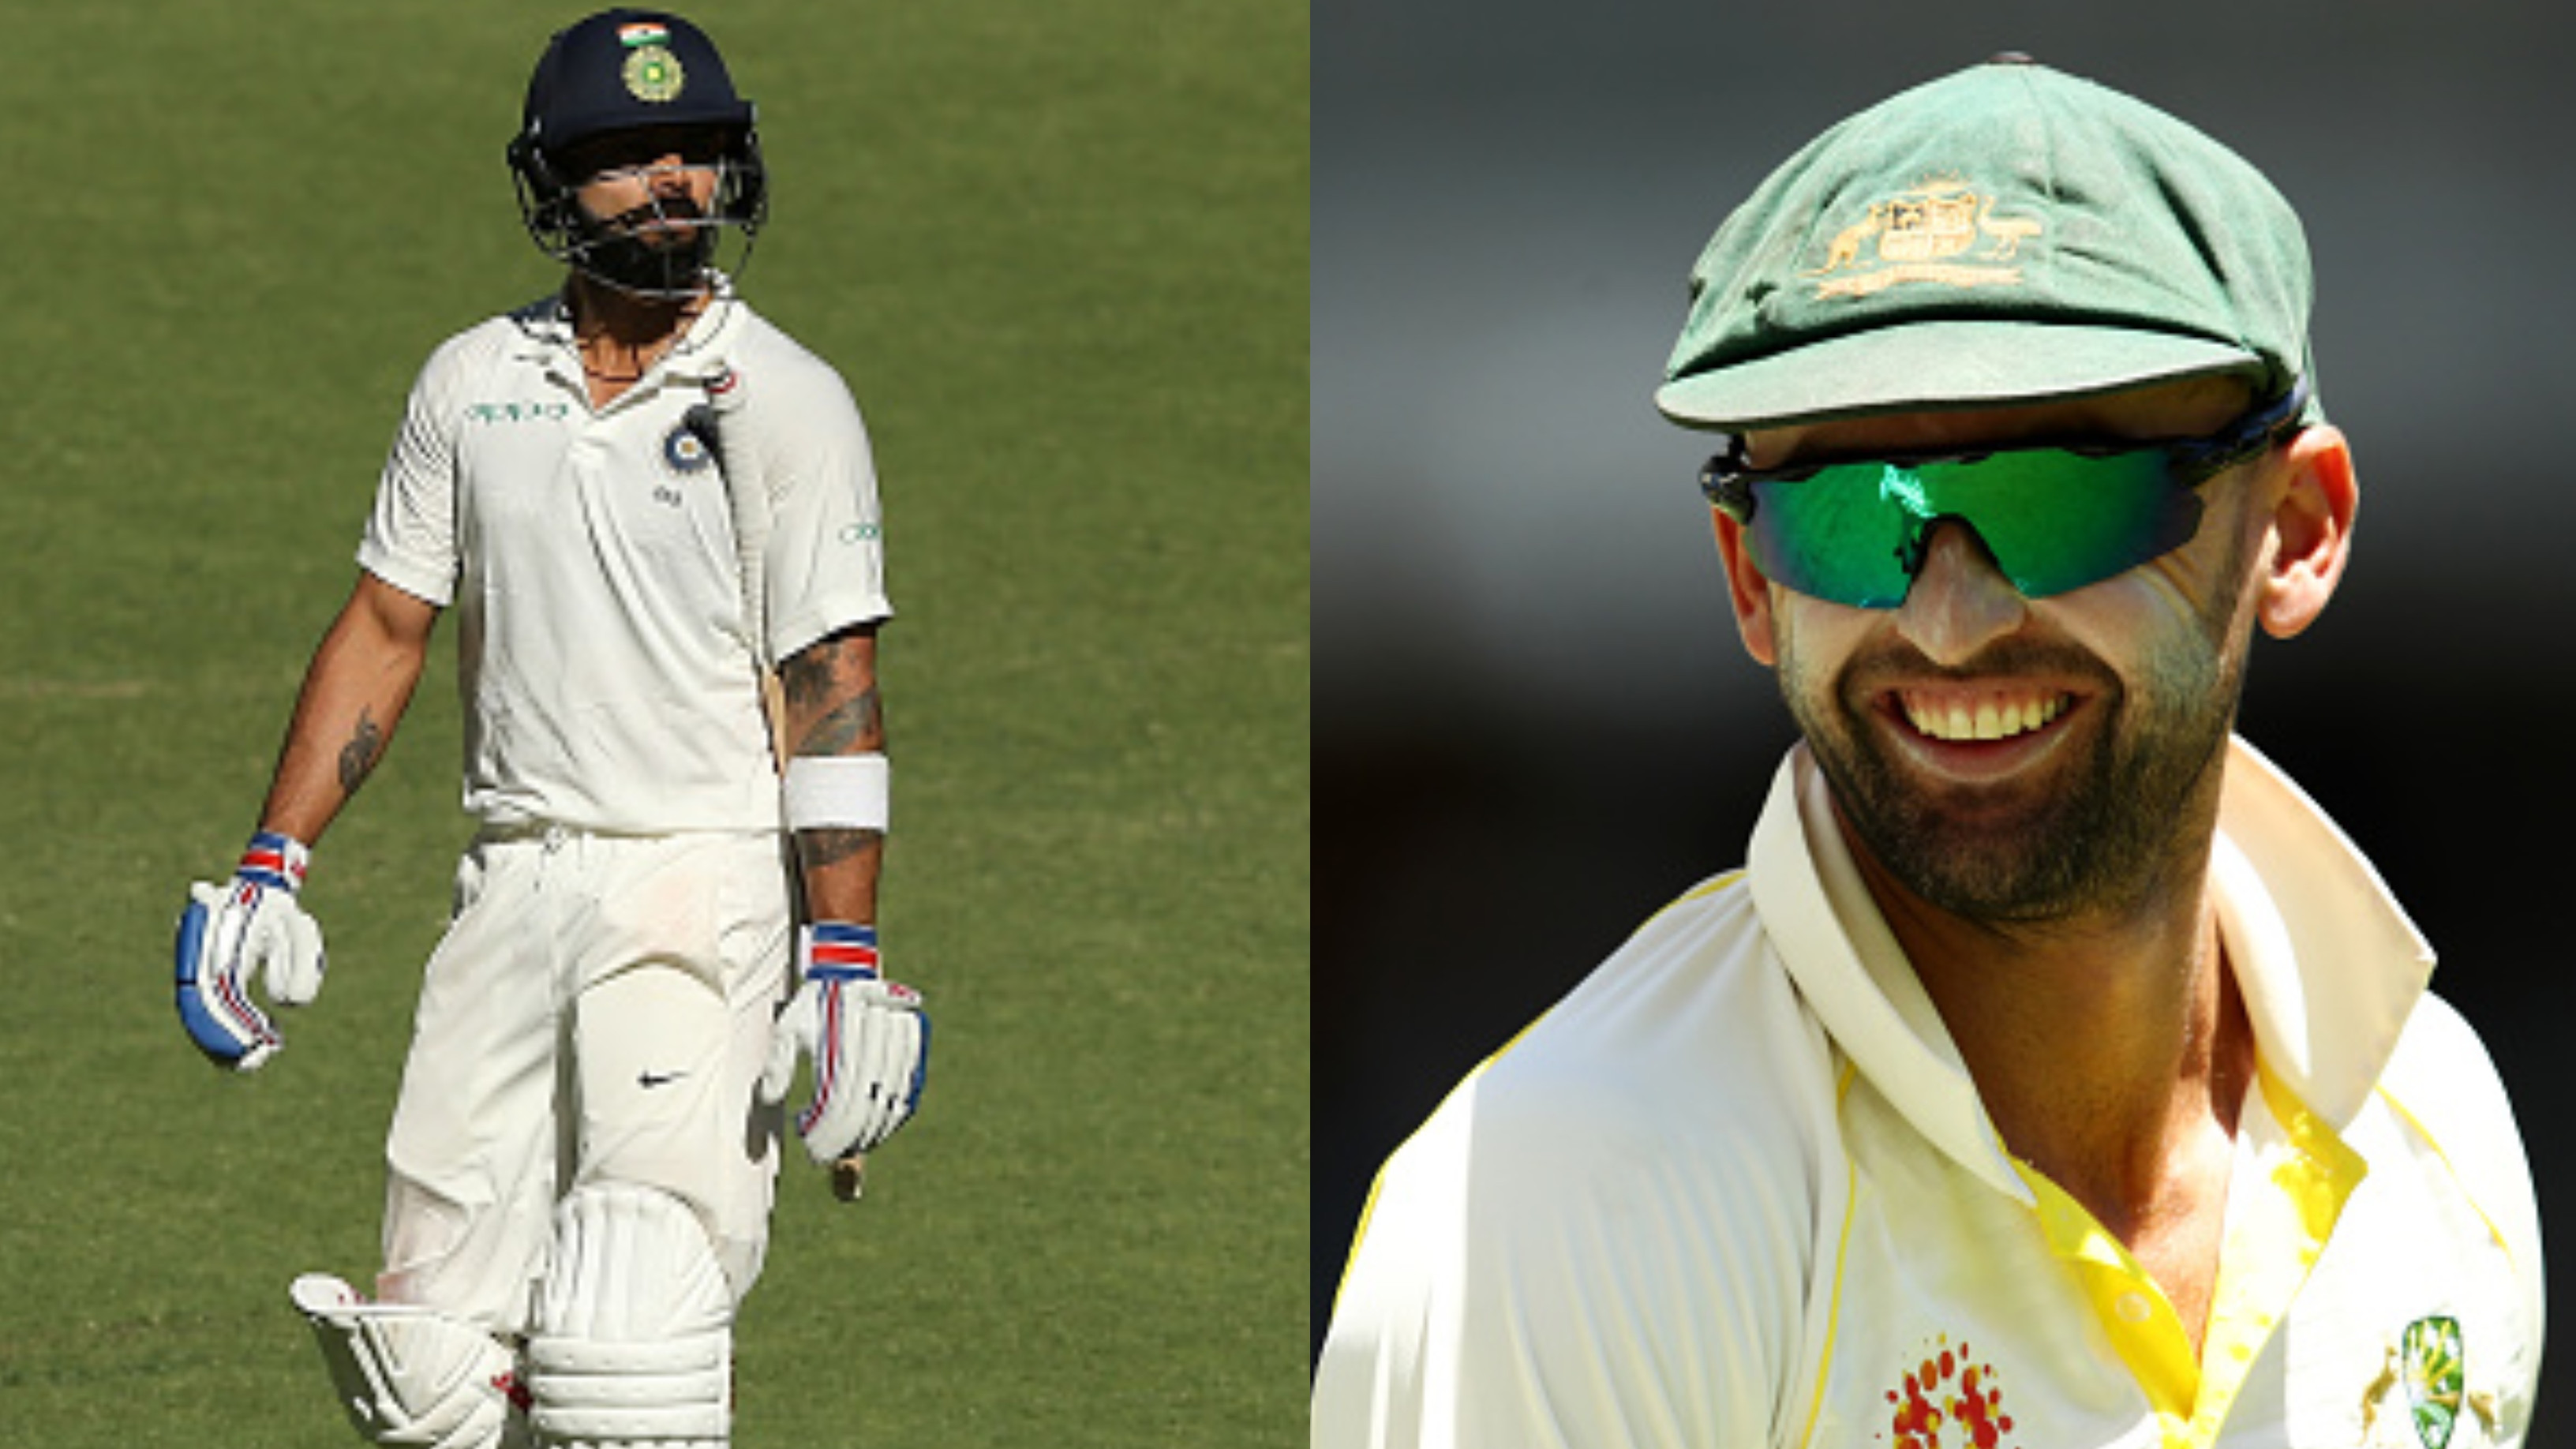 AUS v IND 2018-19: It's pretty special to get Virat Kohli's wicket, admits Nathan Lyon